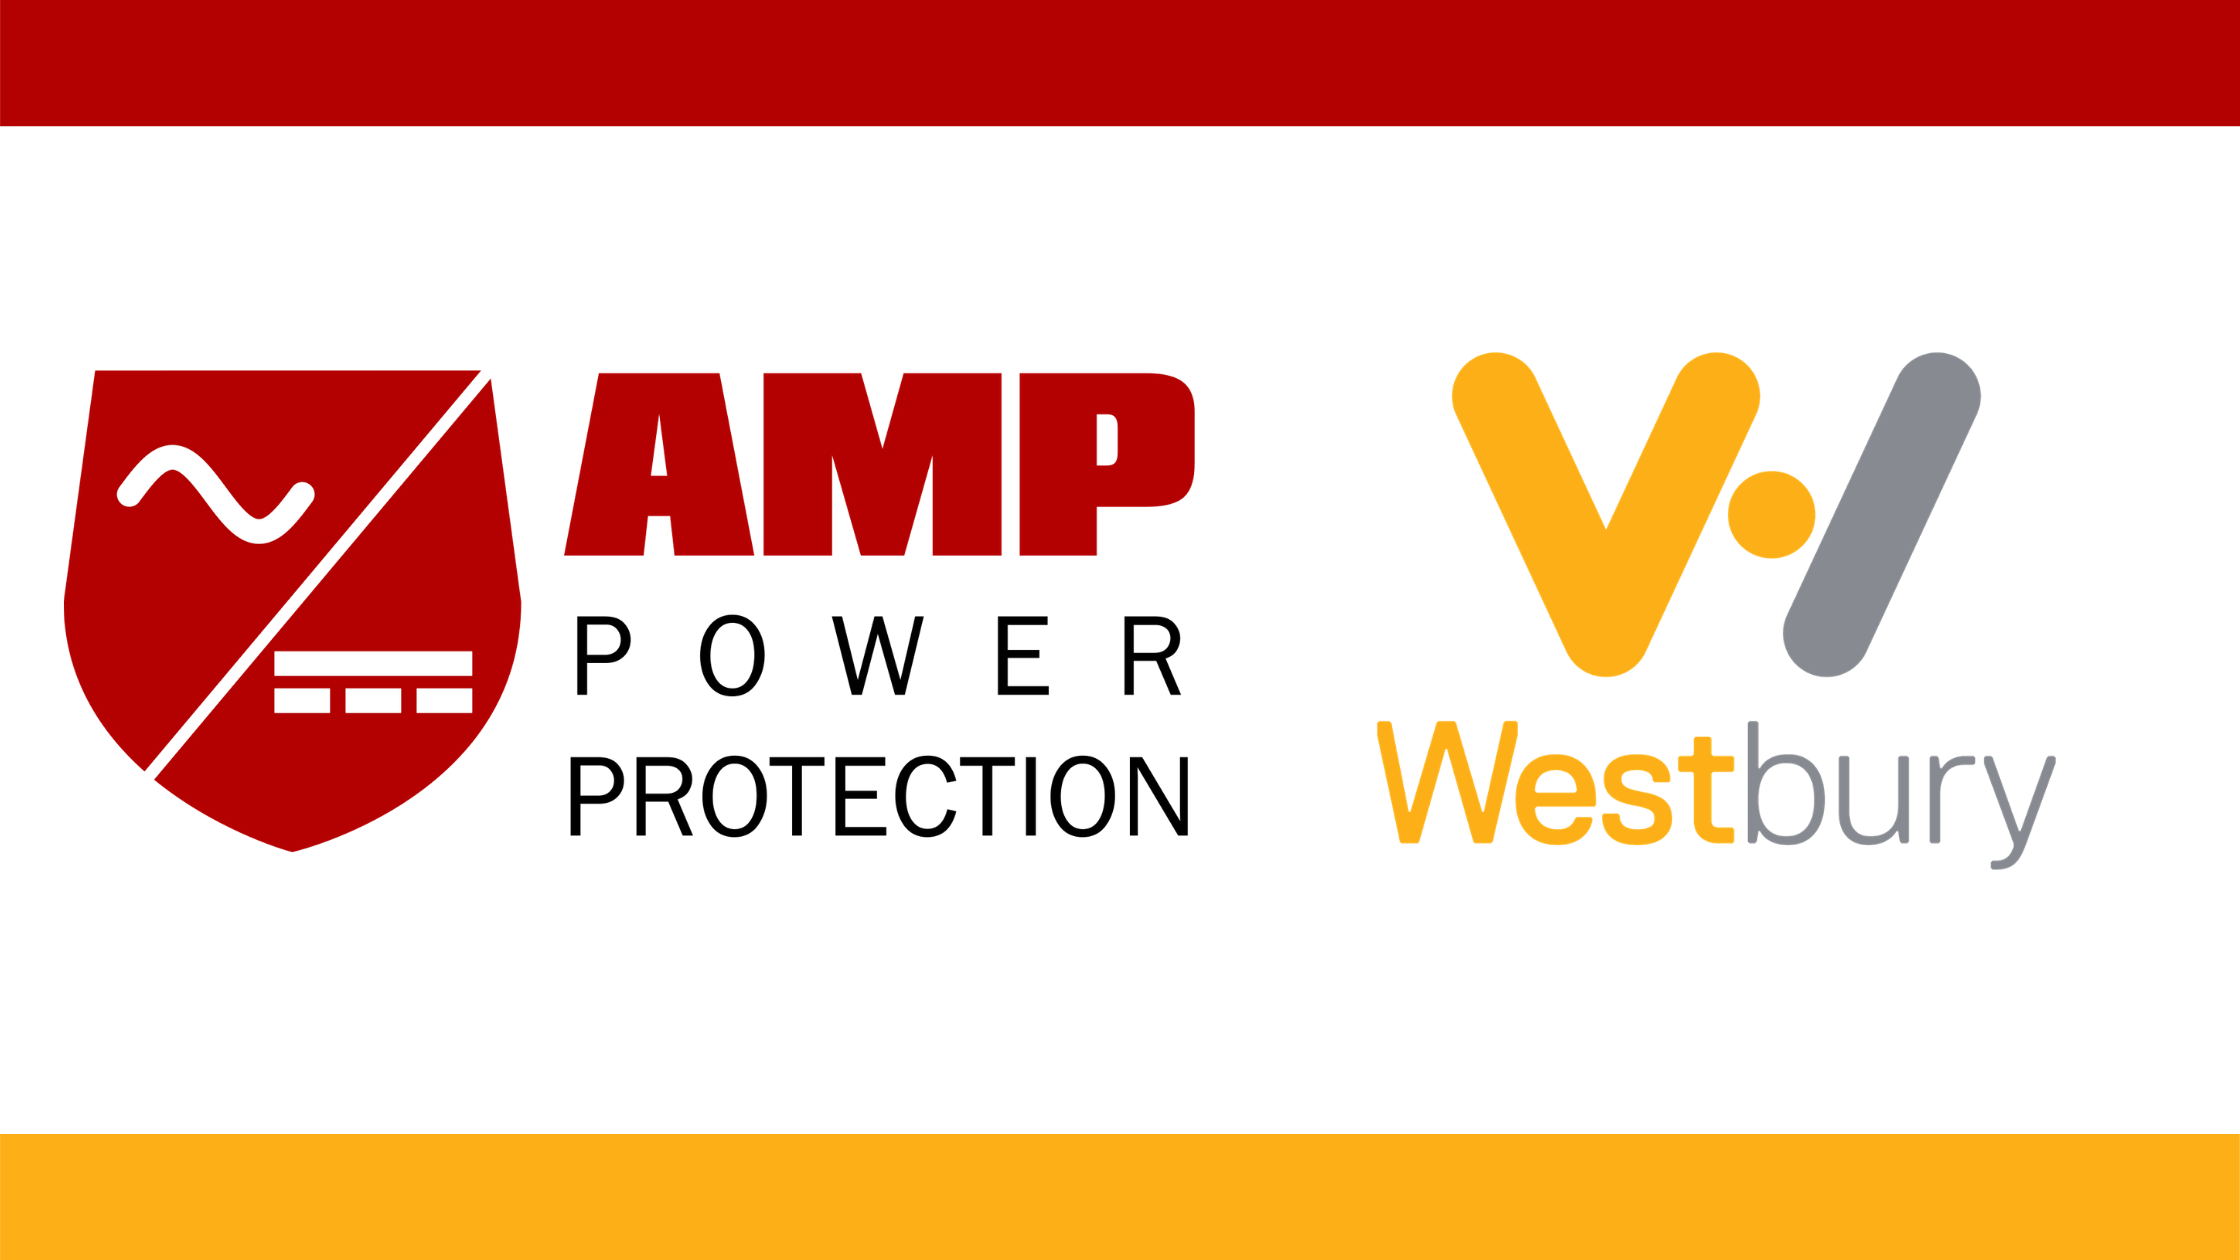 AMP Power Protection Westbruy